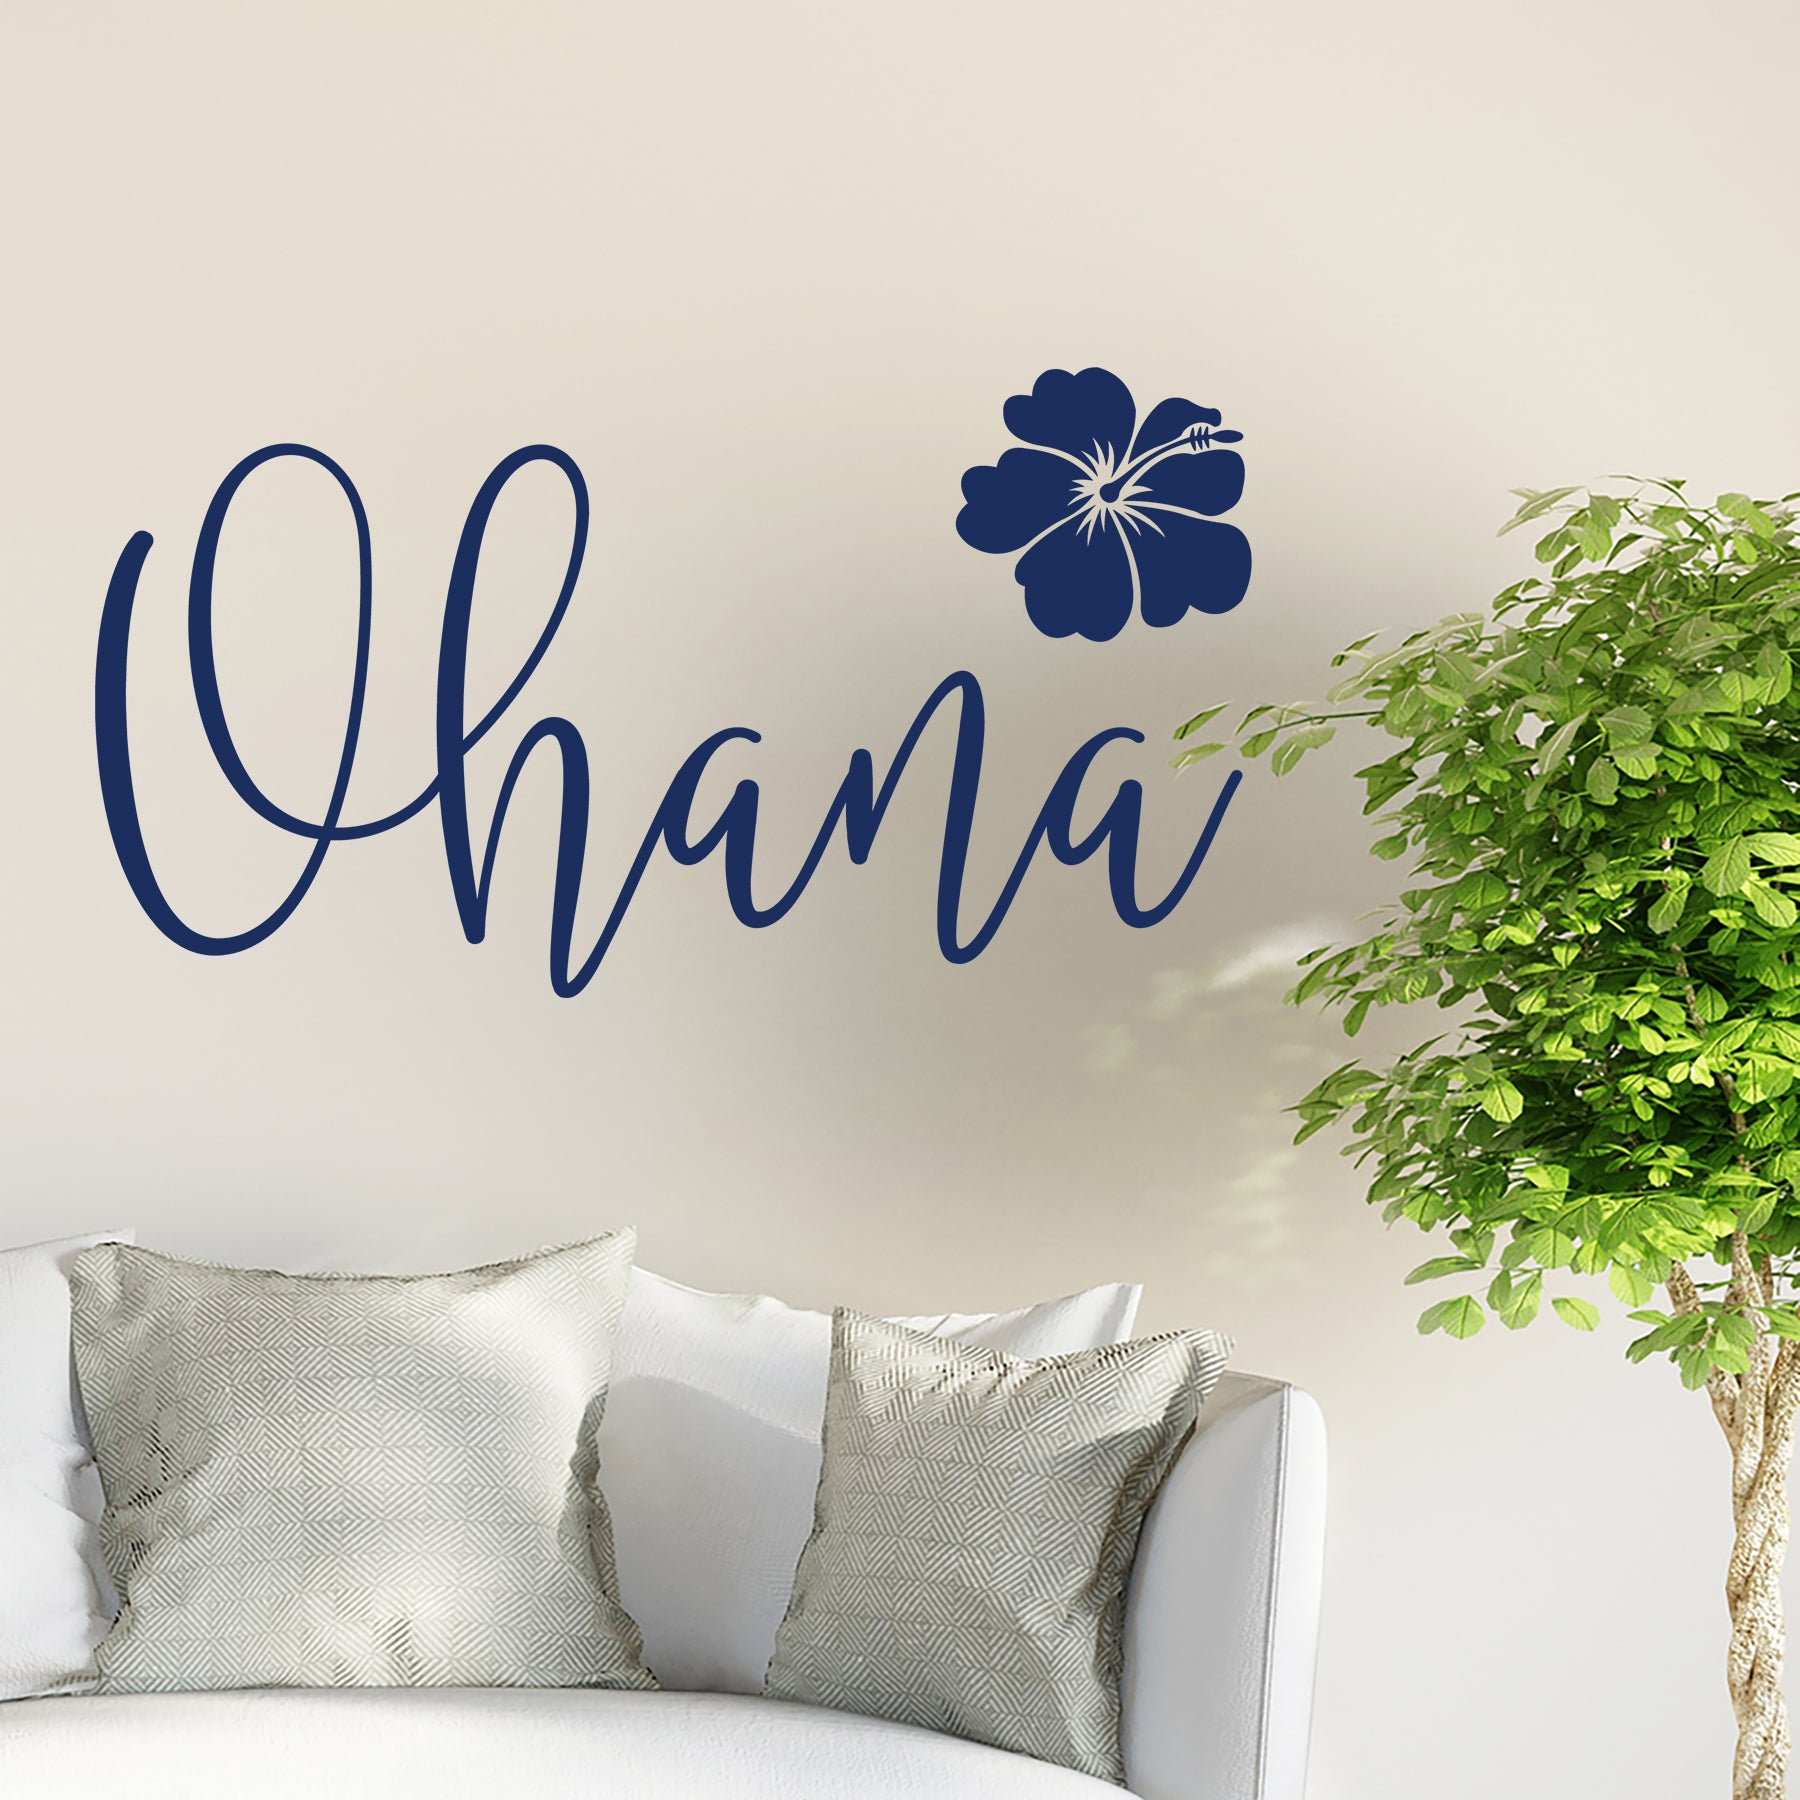 Ohana in Navy. Ohana in Navy Vinyl Decal ...  sc 1 st  Dee-cal Frenzy Wall Decor & Ohana Vinyl Decal Quoteu2013 Wall Decor u2013 Dee-cal Frenzy Wall Decor